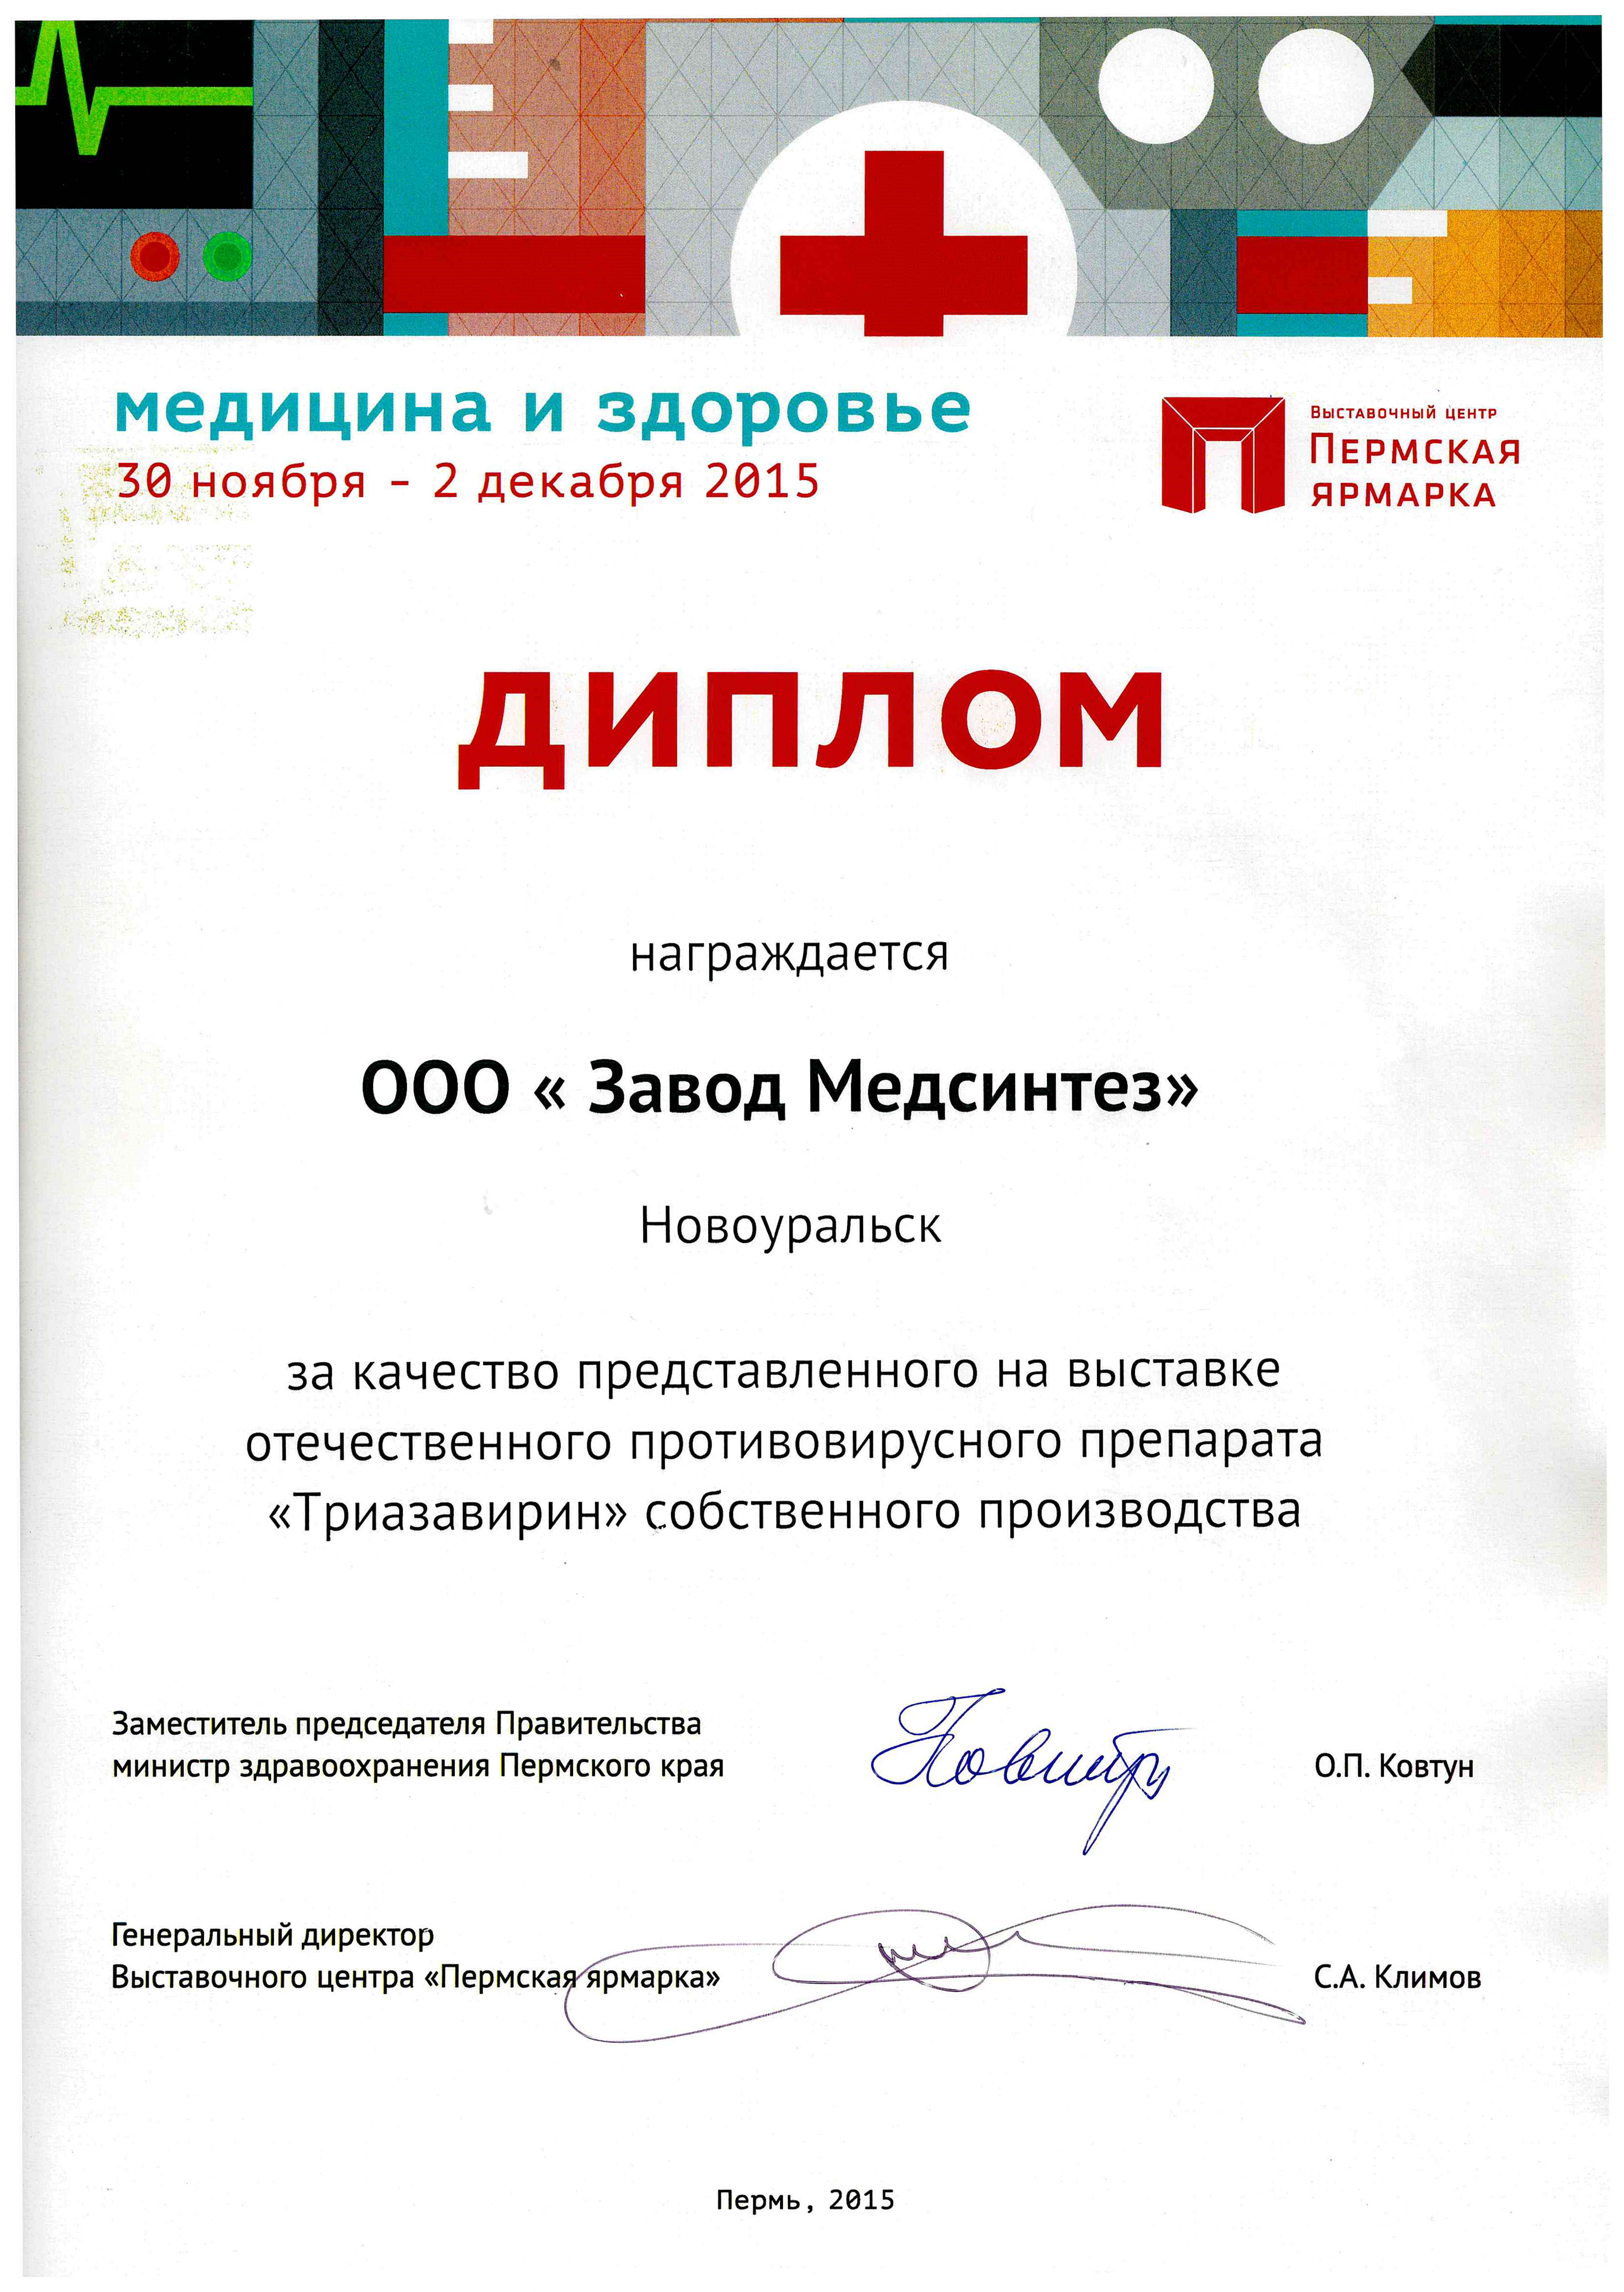 The Diploma of participation in the Medicine and Health exhibition, November 30 - December 2, 2015, Perm